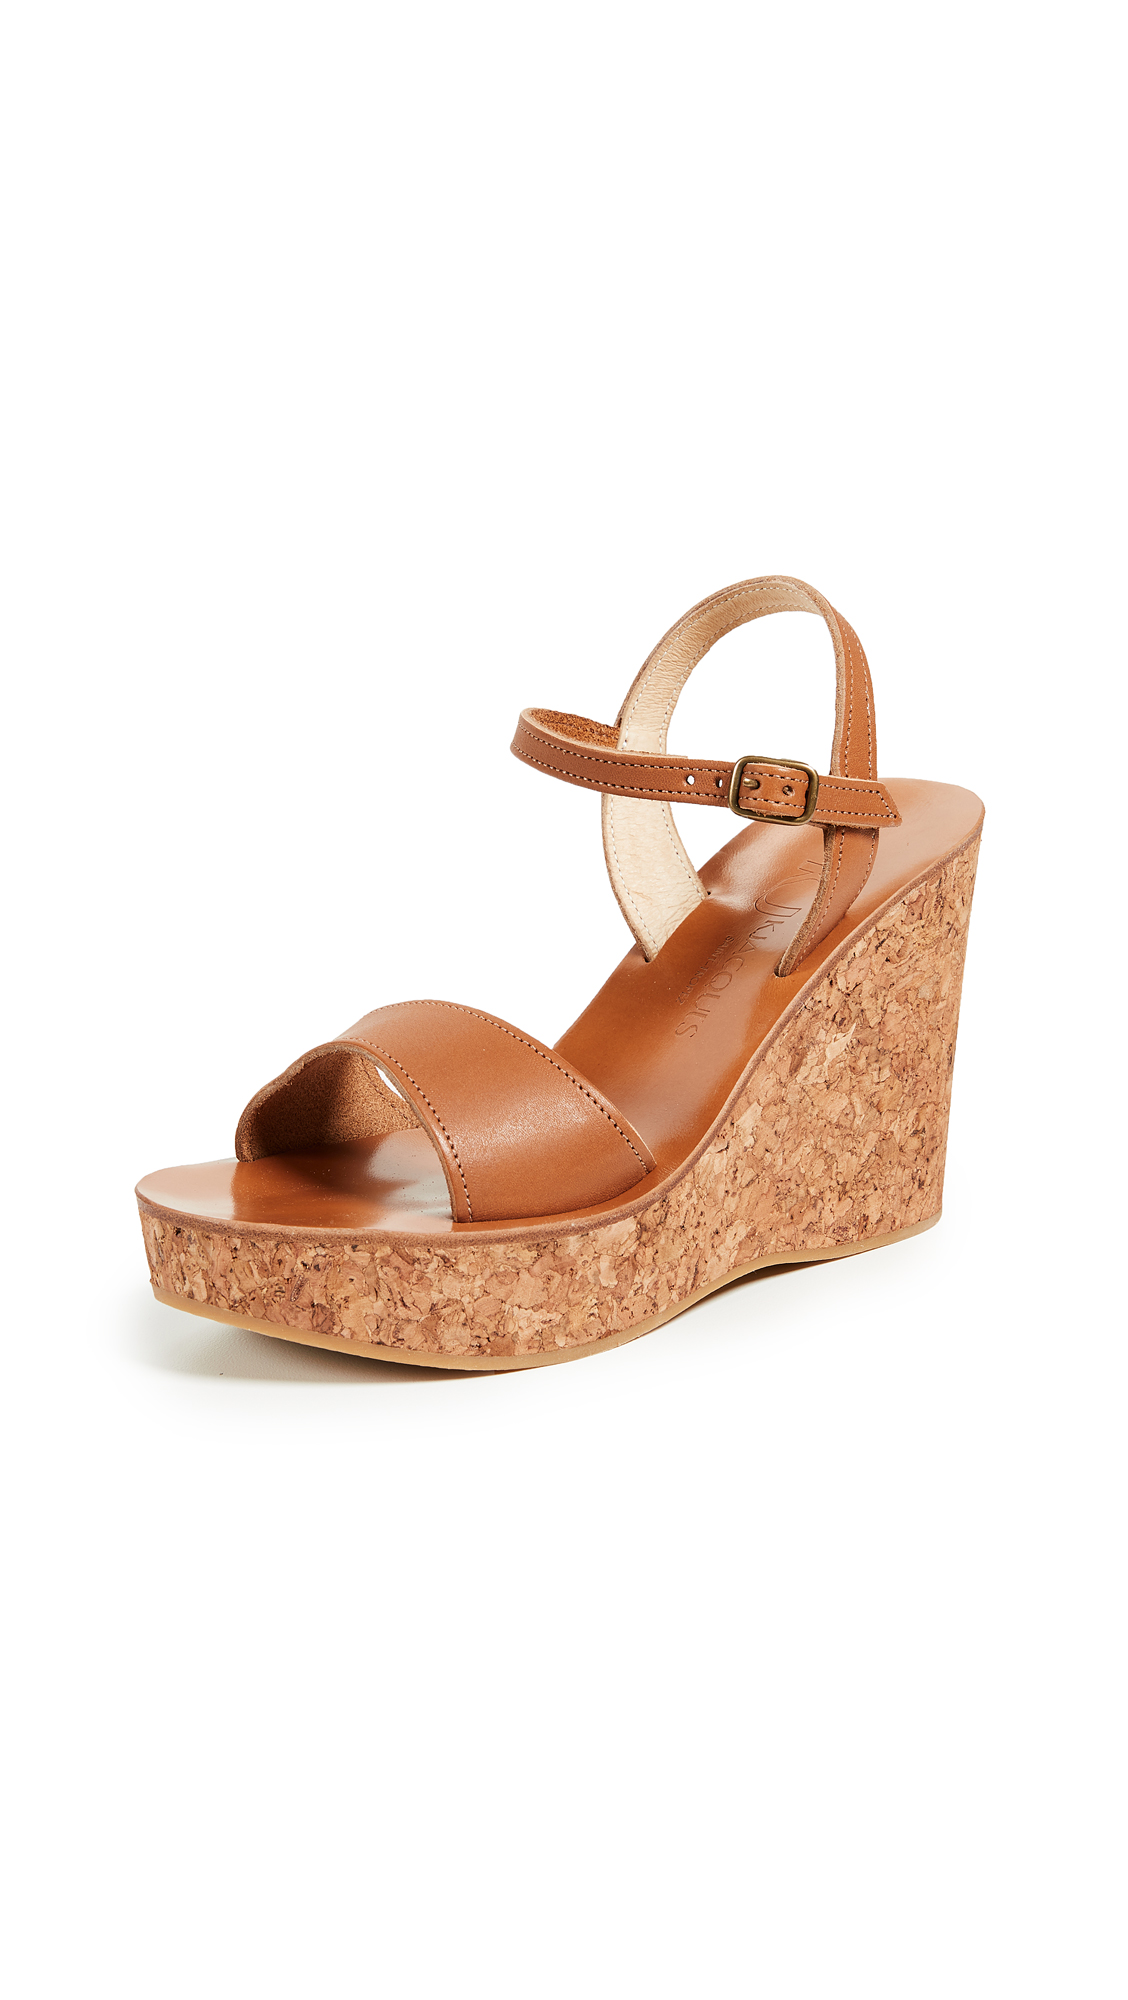 K. Jacques Sharon Wedges - Pul Naturel